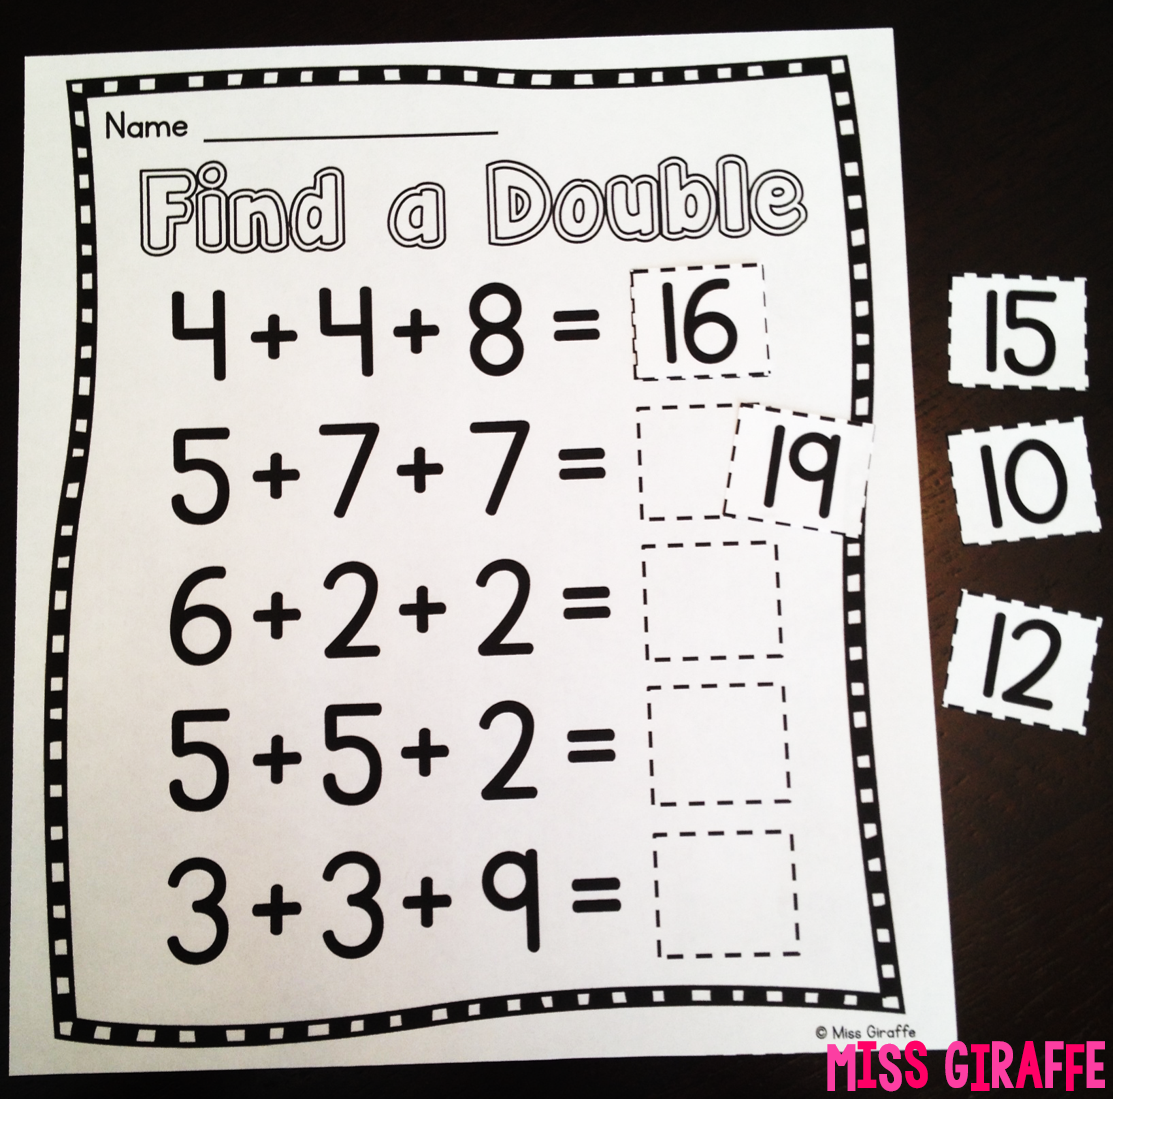 hight resolution of Miss Giraffe's Class: Adding 3 Numbers